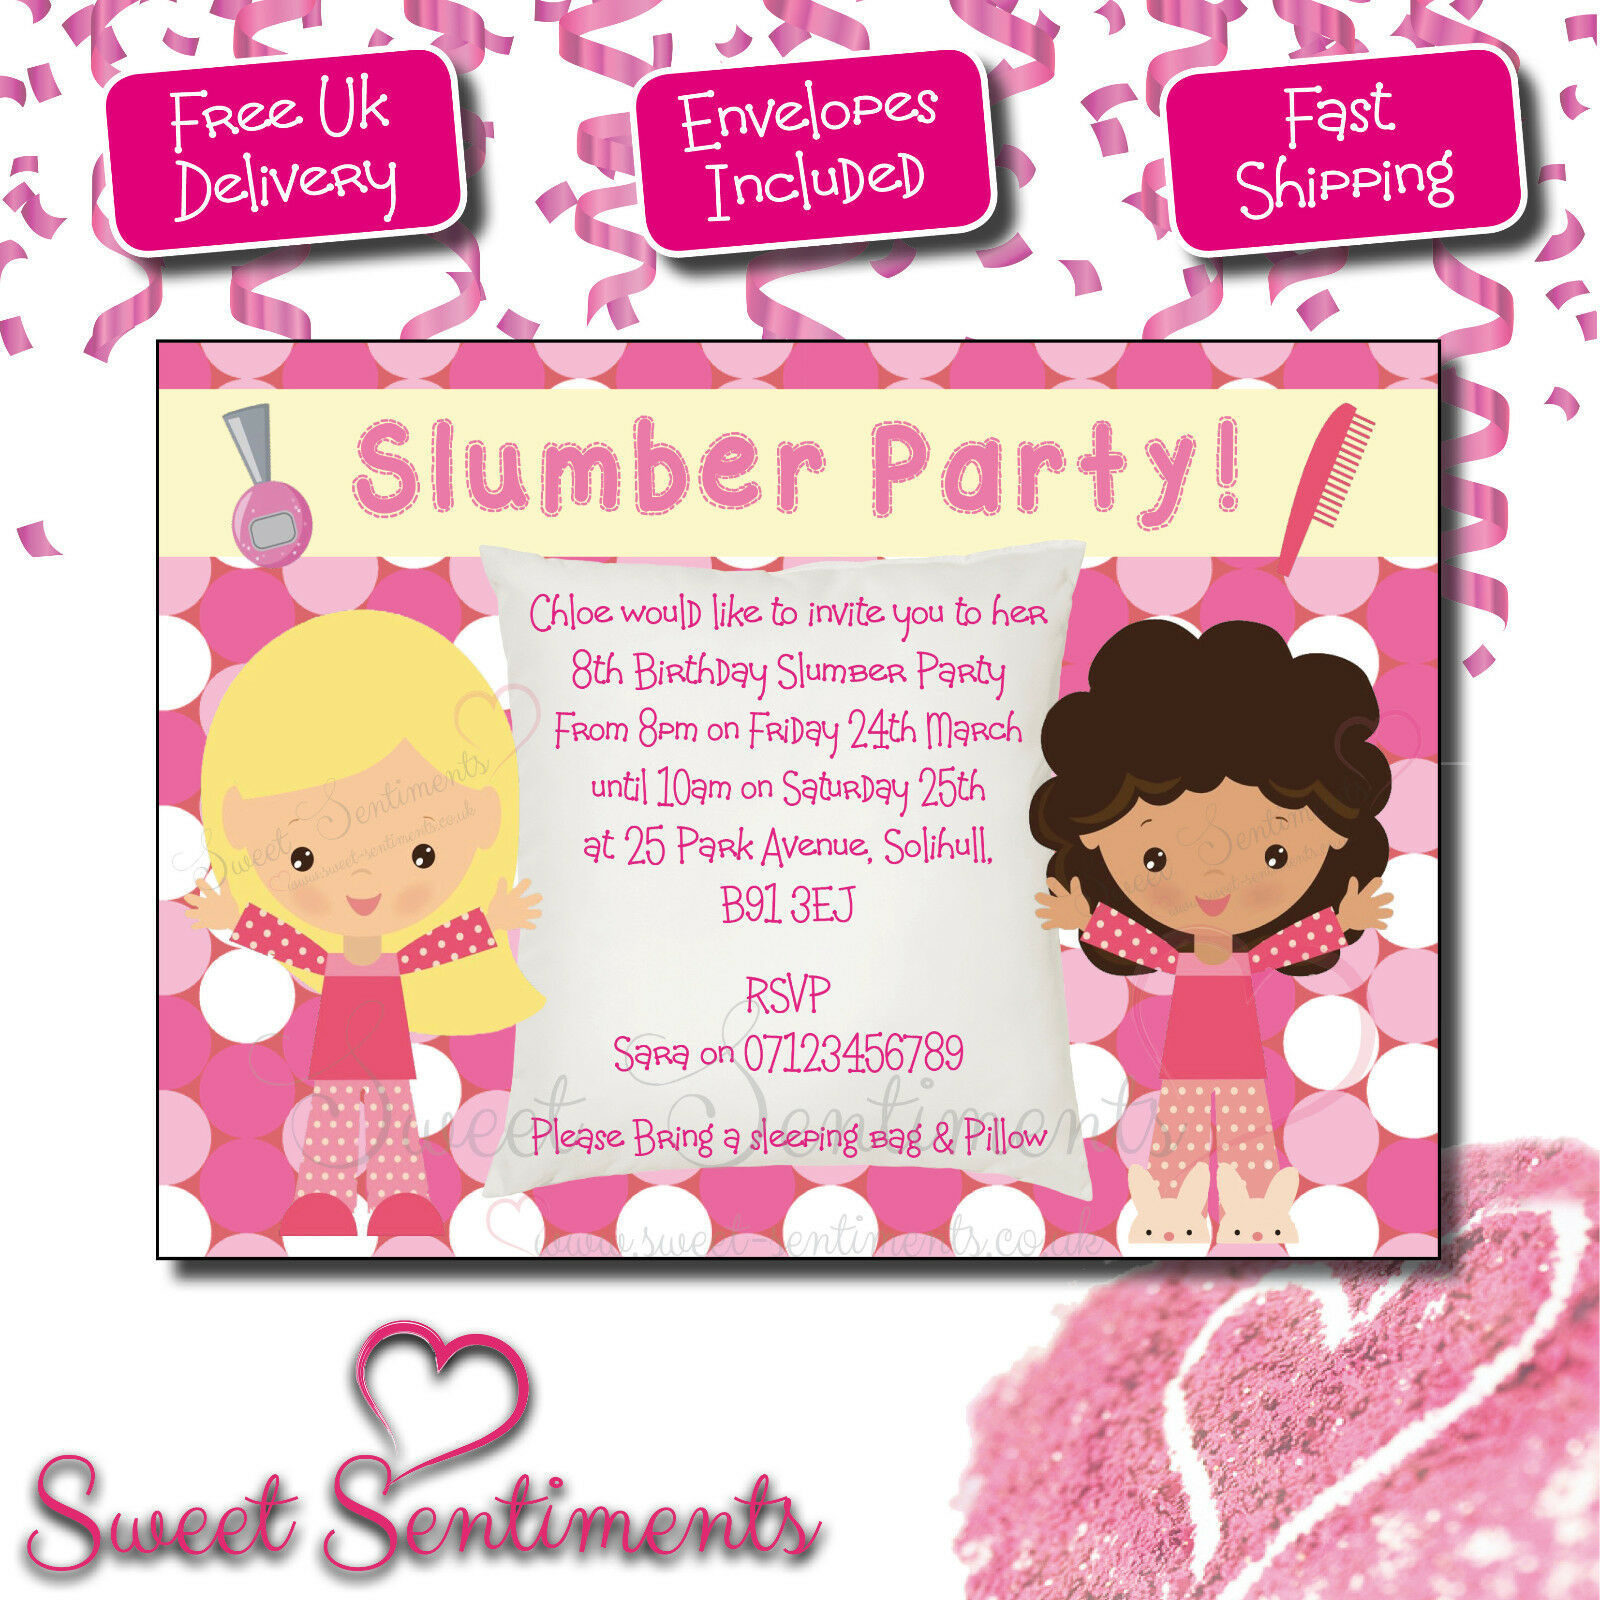 Personalised Kids Birthday Party Pyjama Party Slumber Party Invitations (IN2)